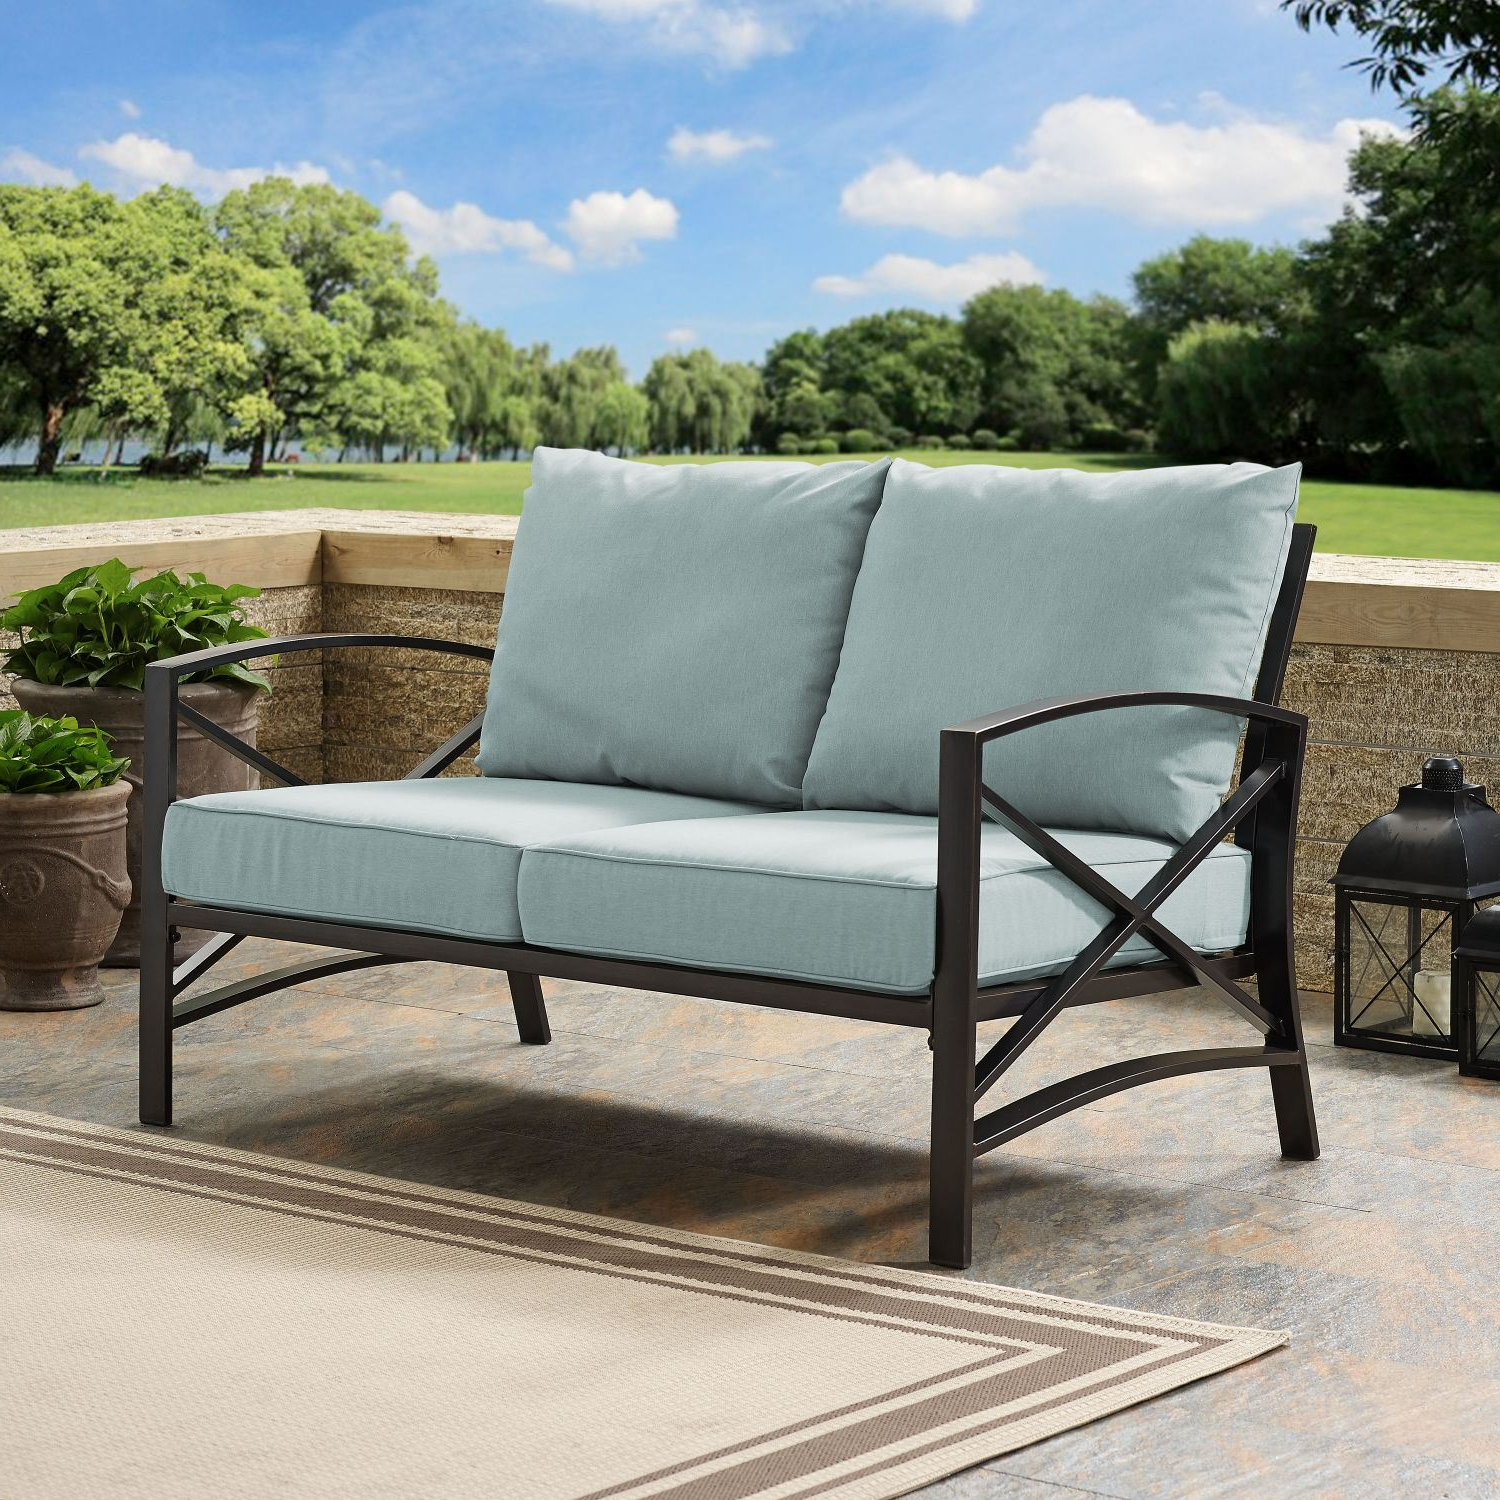 Kaplan Loveseat In Oiled Bronze With Mist Universa Regarding Well Known Chaise Lounge Chairs In Bronze With Oatmeal Cushions (View 11 of 25)